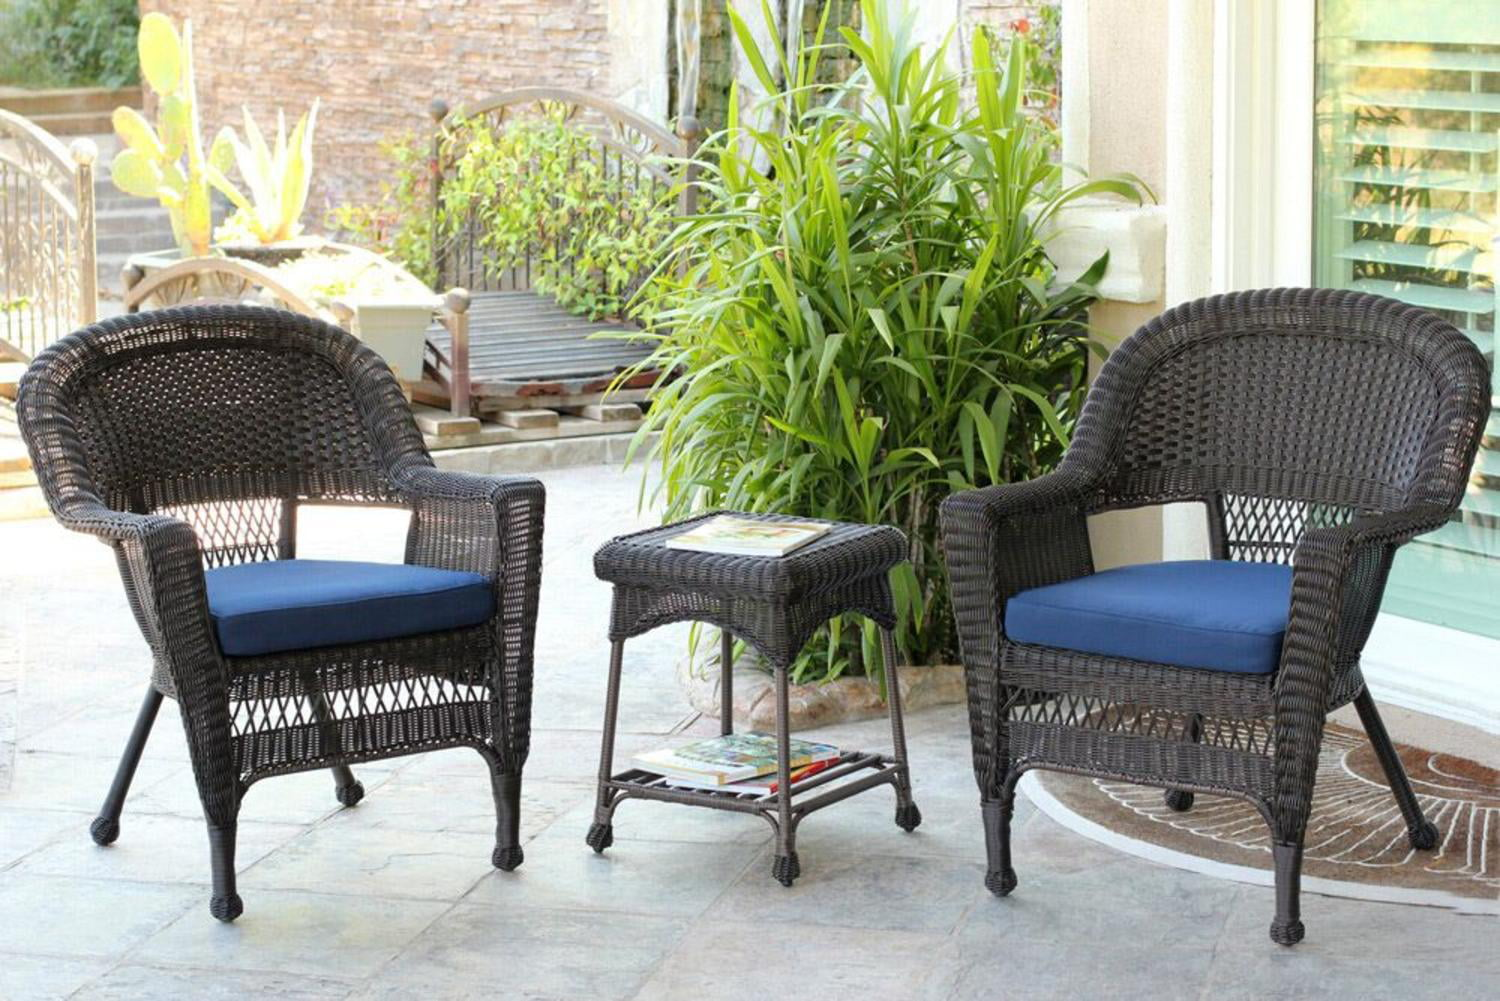 4 Piece Black Resin Wicker Patio Furniture Set Loveseat 2 Chairs Glass Top Table